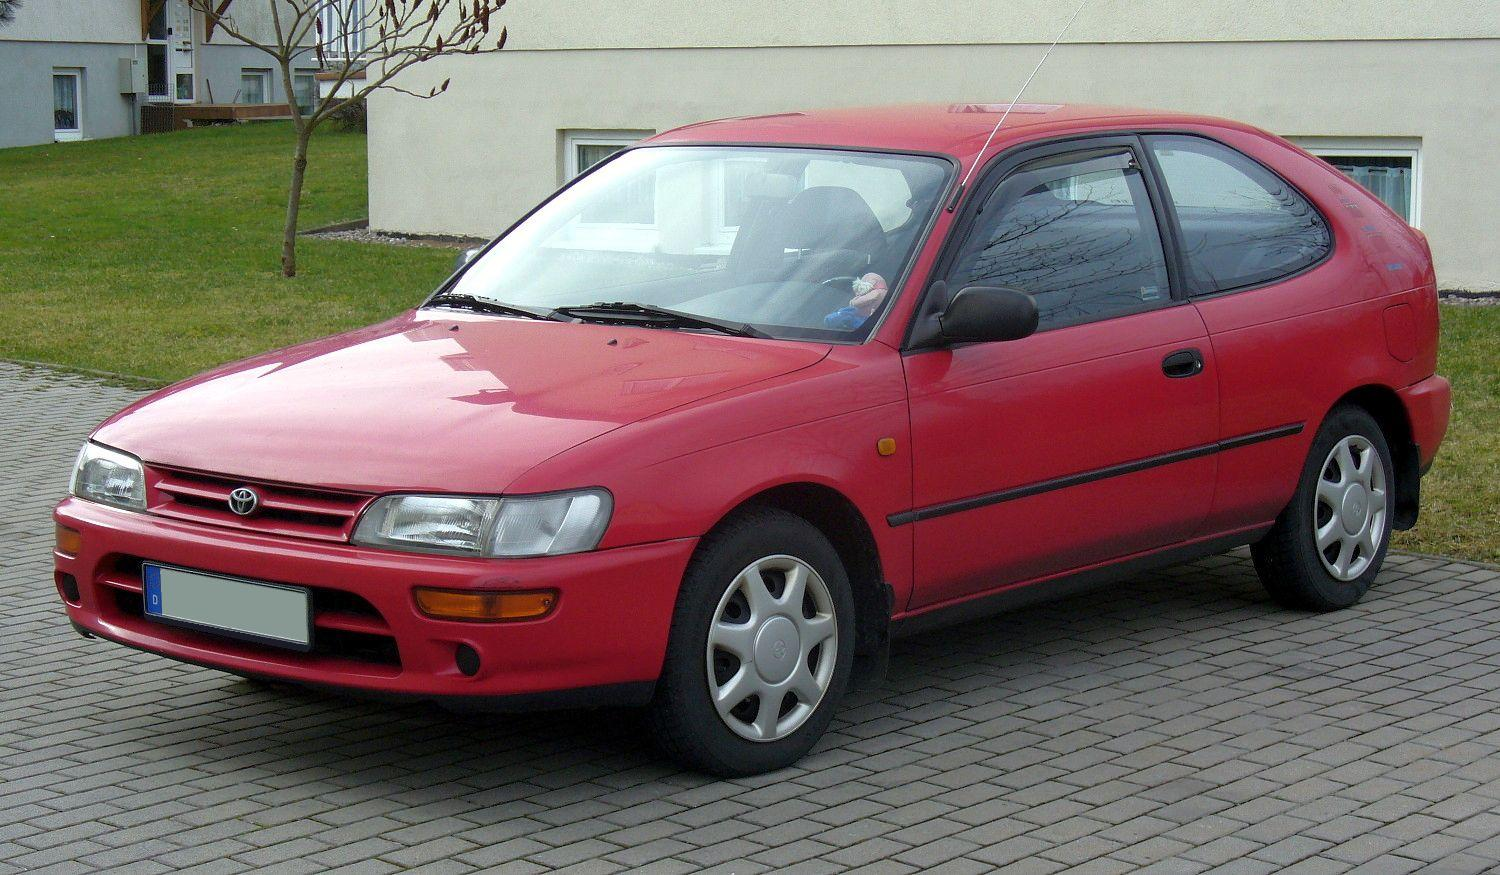 Pictures of toyota corolla (e10) 1996